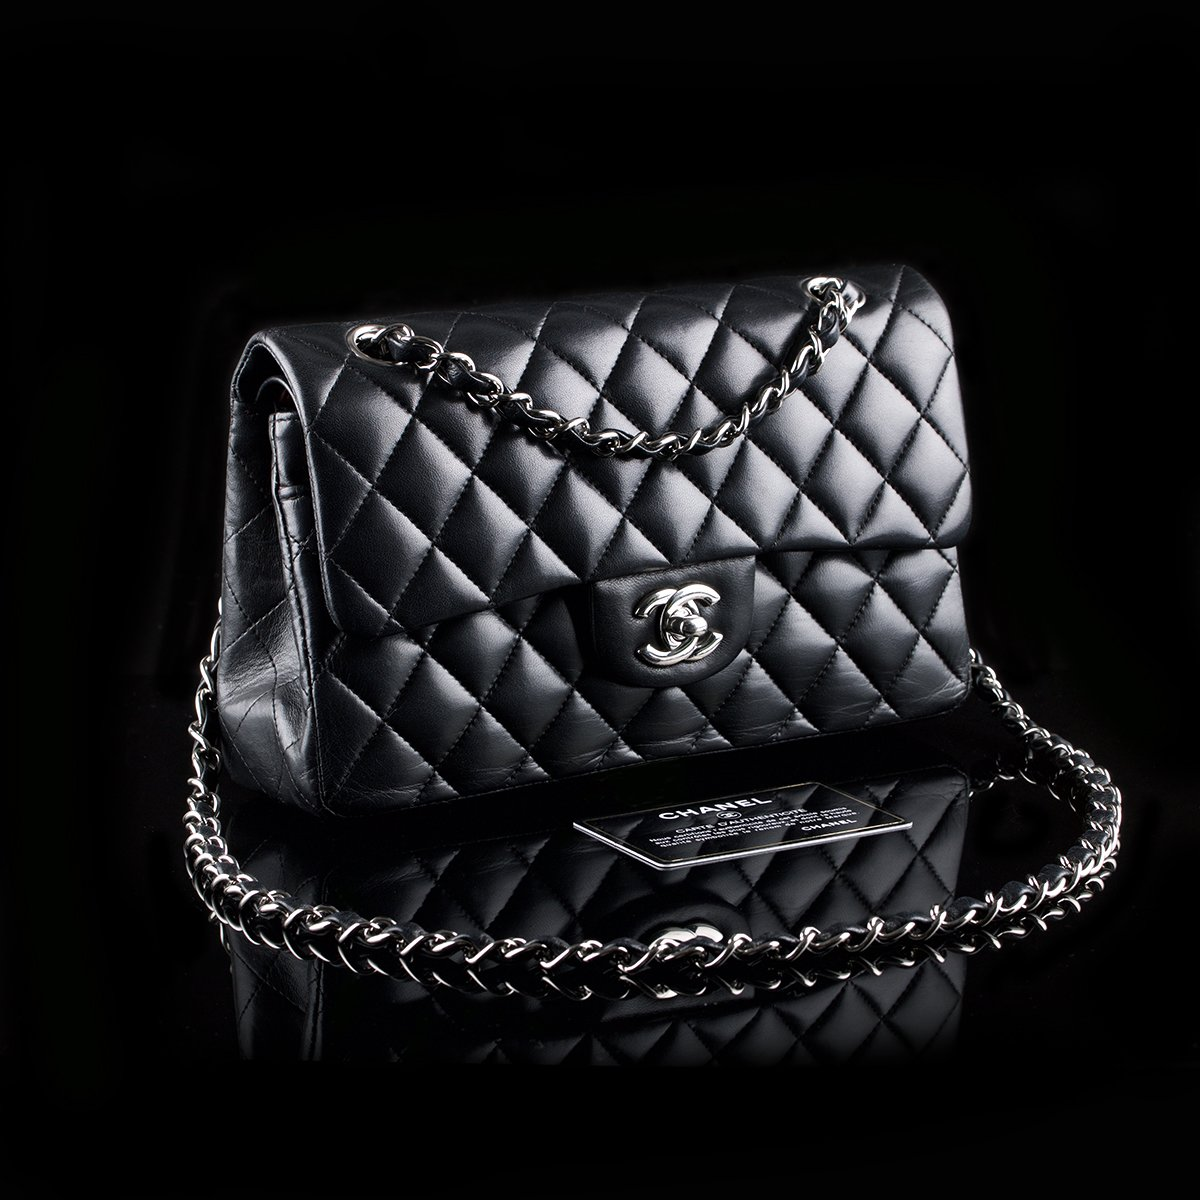 89f2c198cfe SOLD! Chanel 2.55 Timeless Classic Flap Small Black Lambskin ...